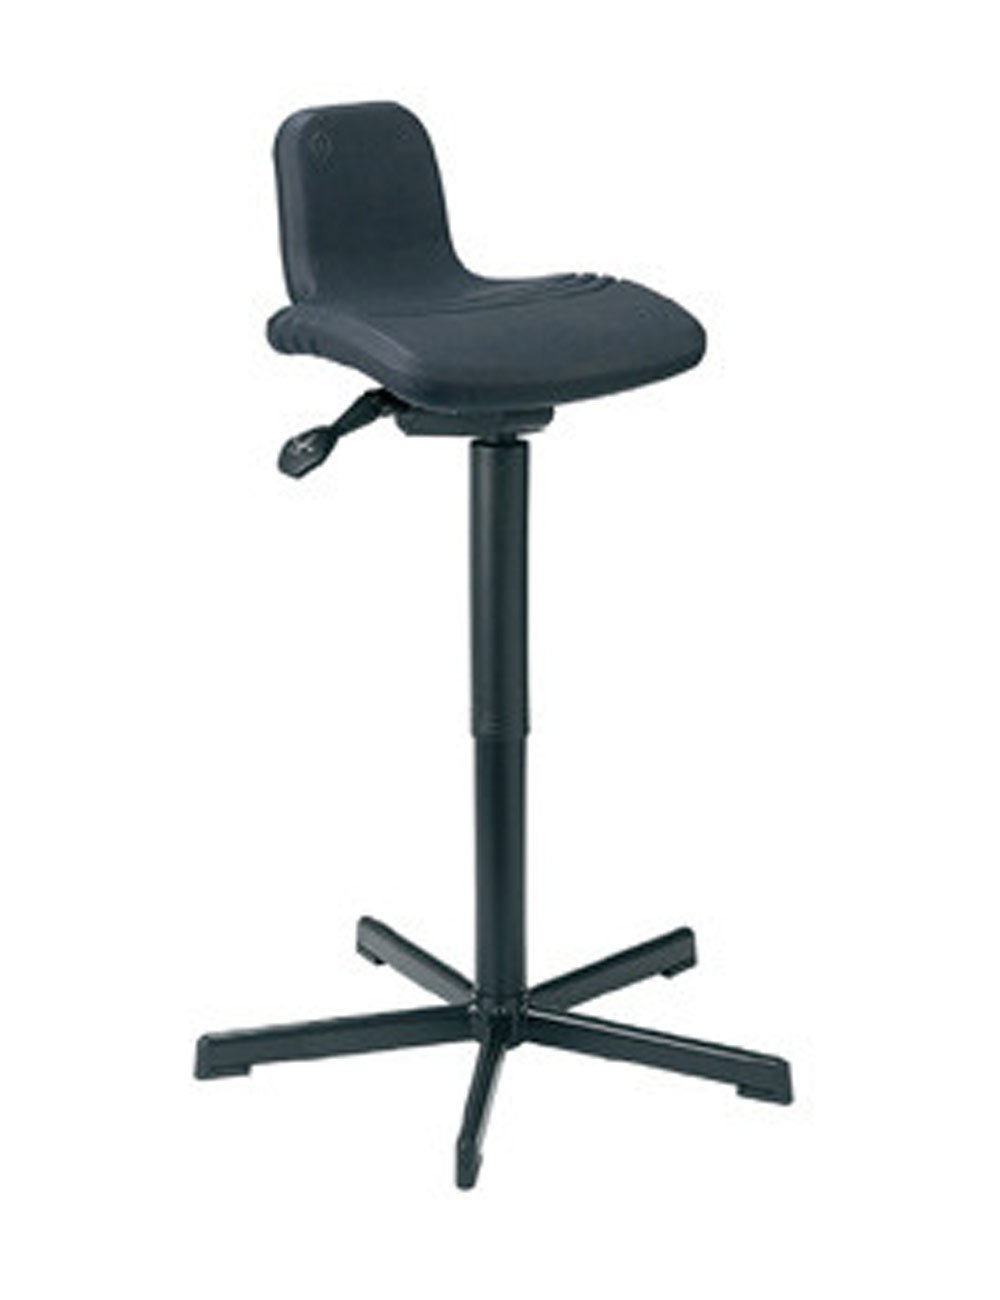 Score Sit-Stand Chair  sc 1 st  Online Ergonomics : ergonomic stool for standing desk - islam-shia.org